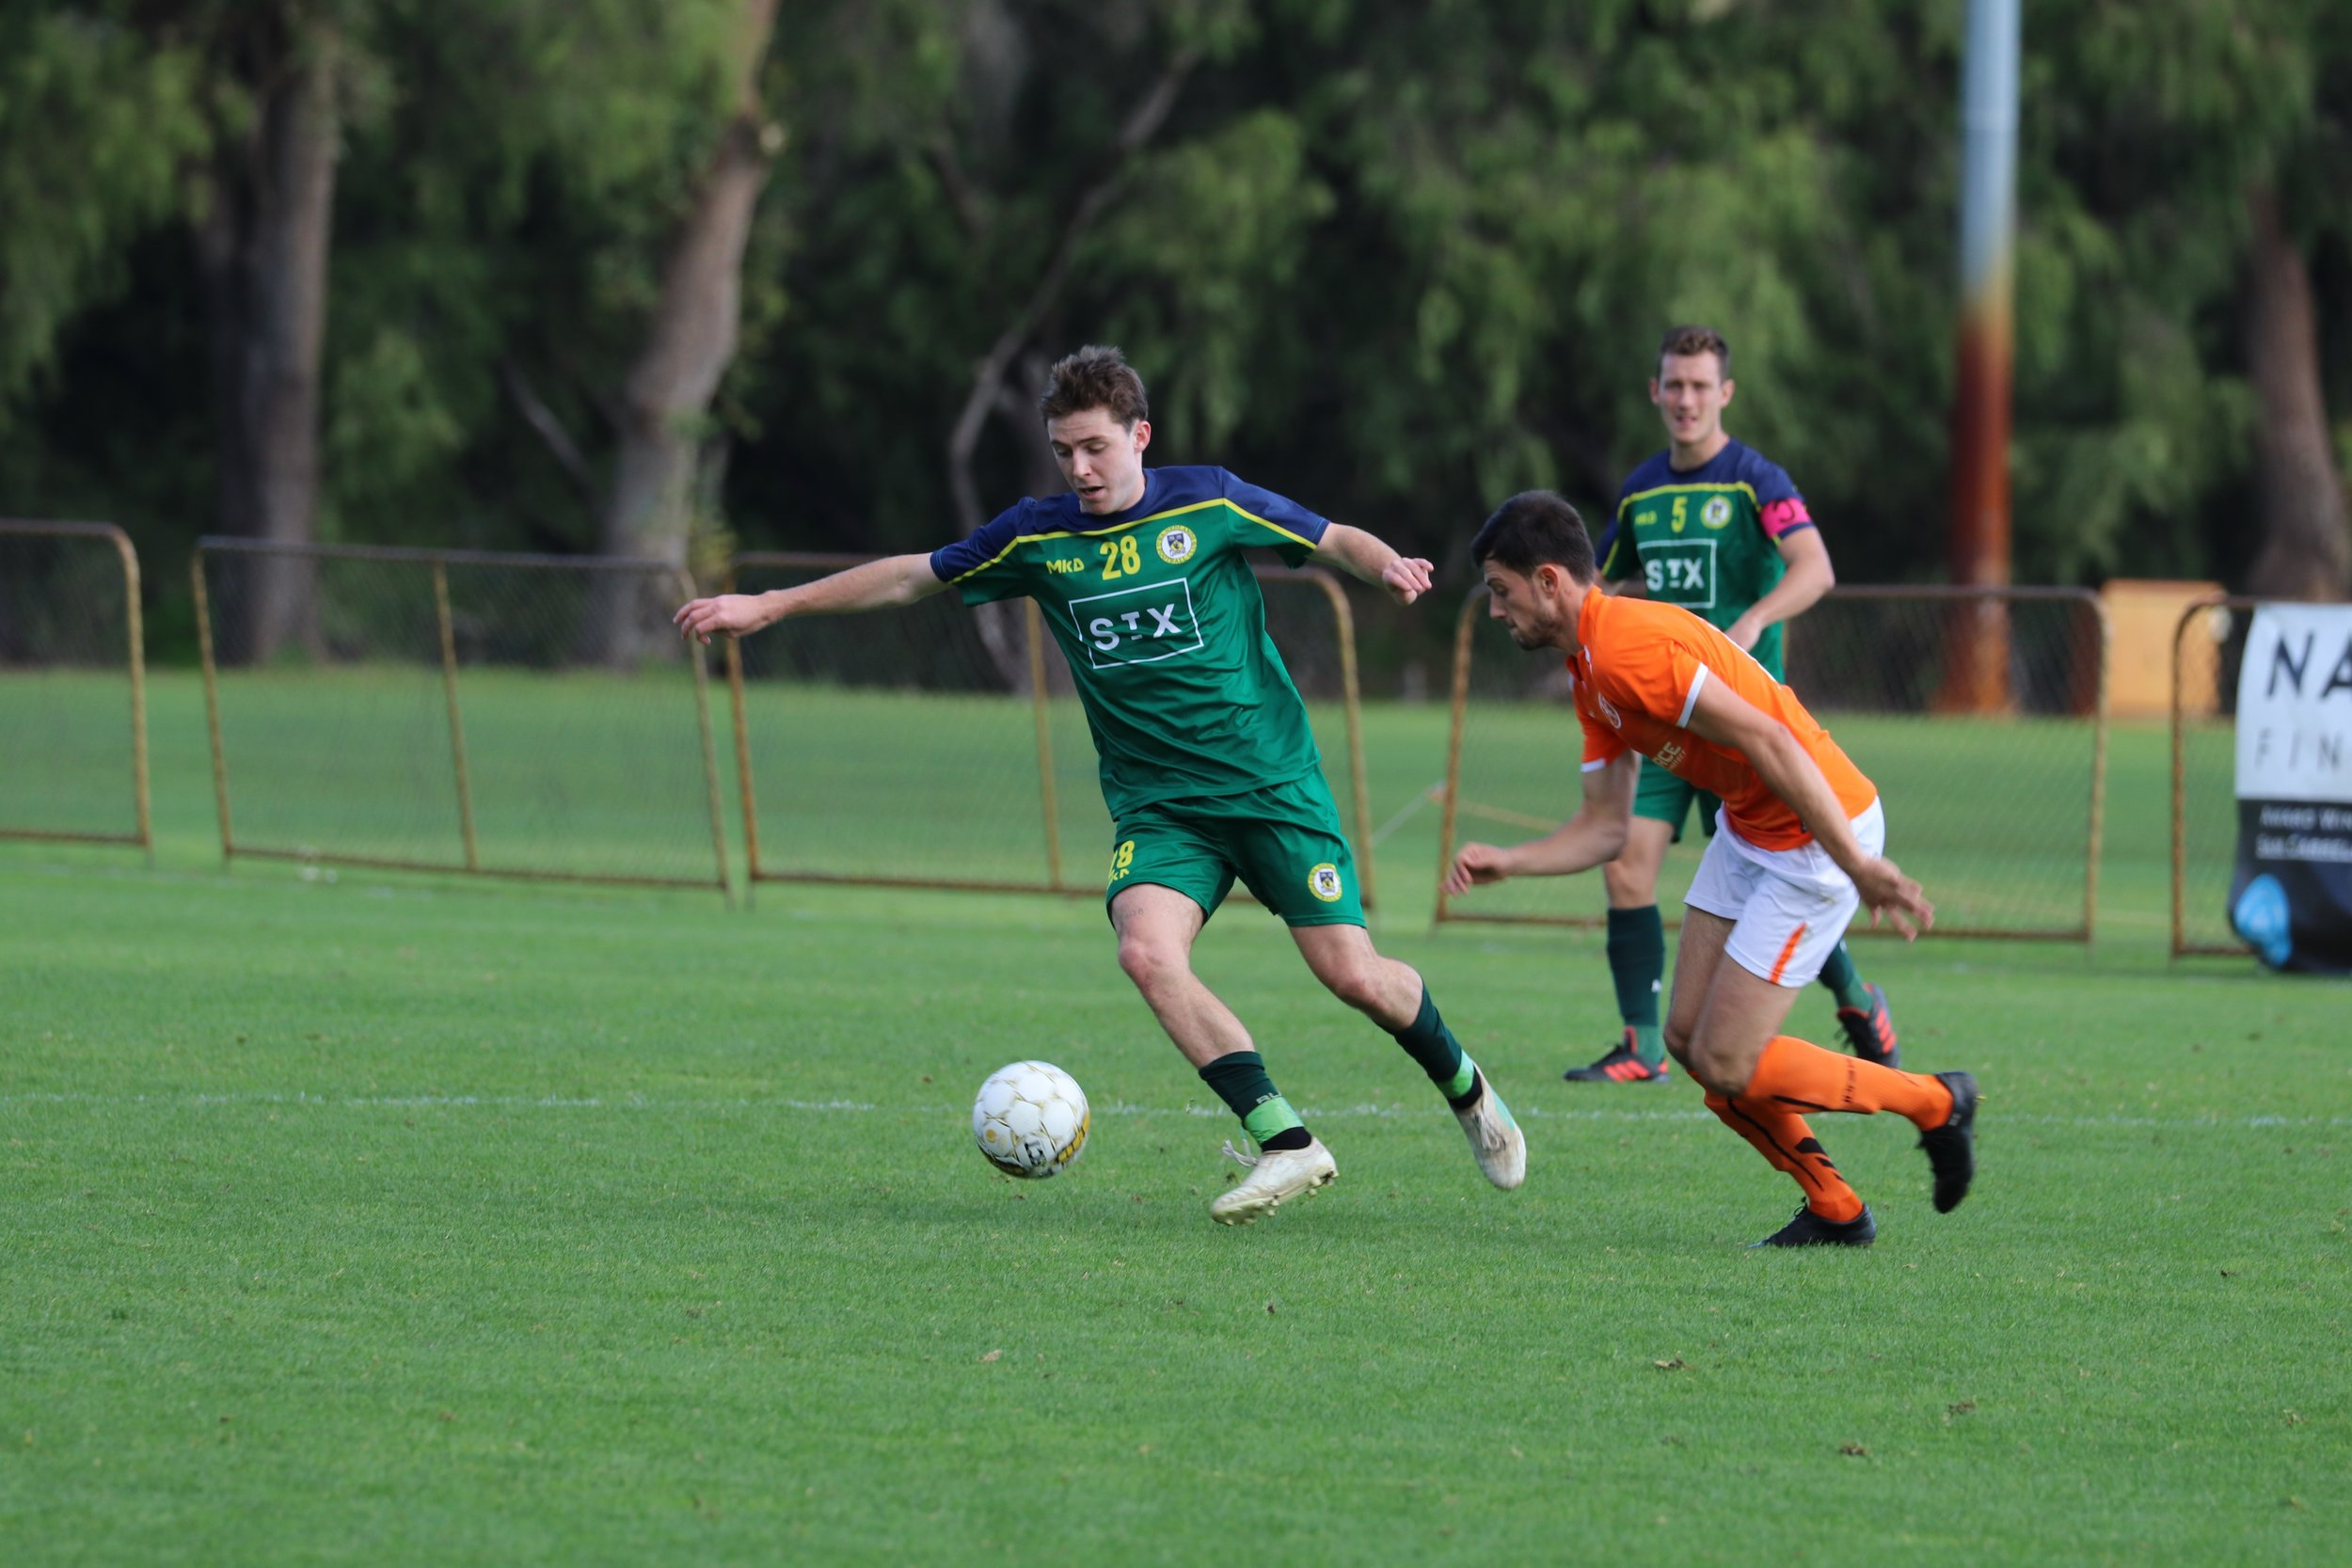 MAN OF THE MATCH CONOR DEVLIN ON THE BALL - CREDIT: GABRIELE MALUGA